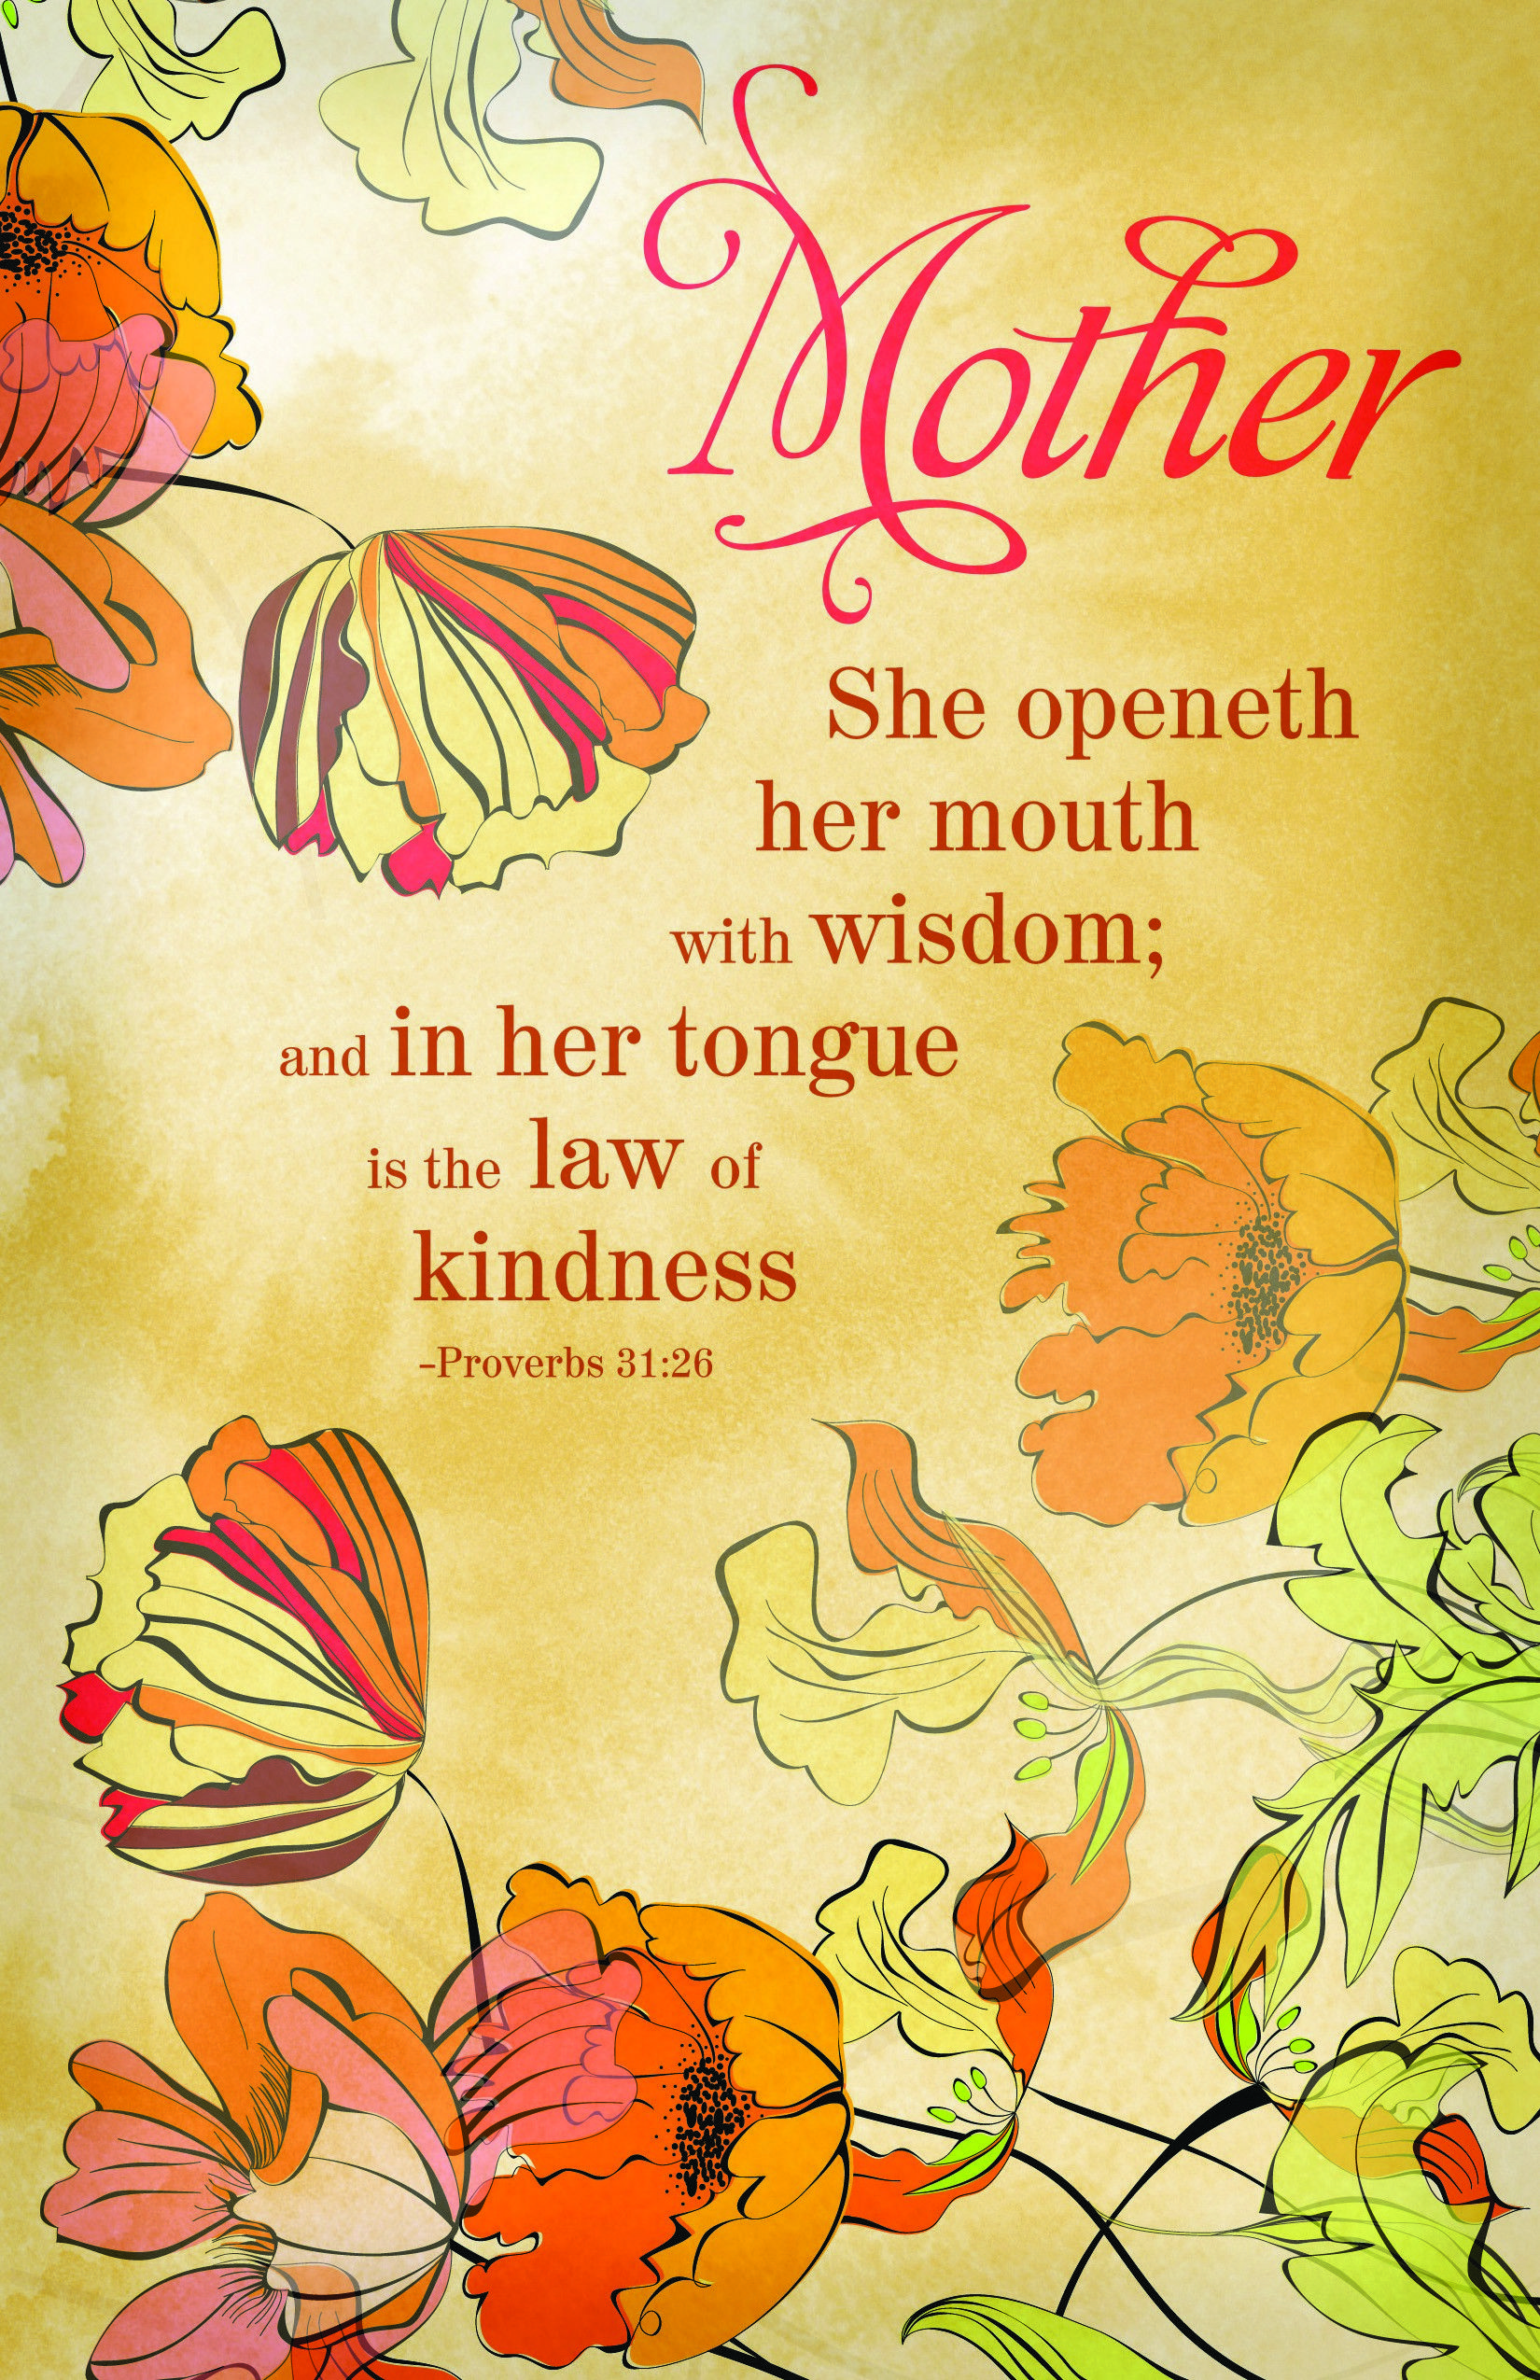 Mother's Day Proverbs 3126 Mothers day quotes